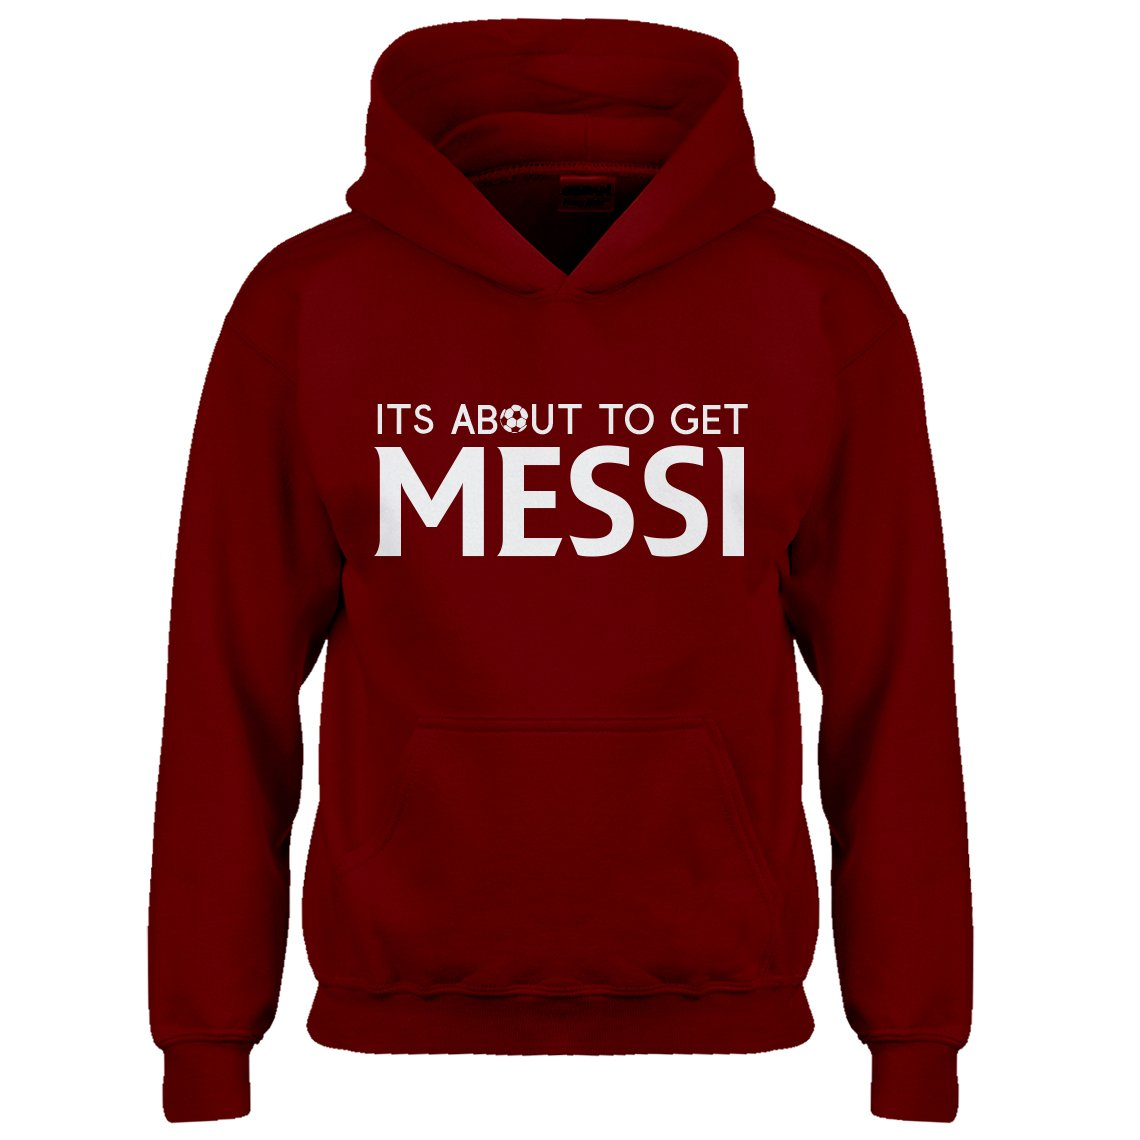 Indica Plateau Kids Hoodie Its About to Get Messi Medium Red Hoodie